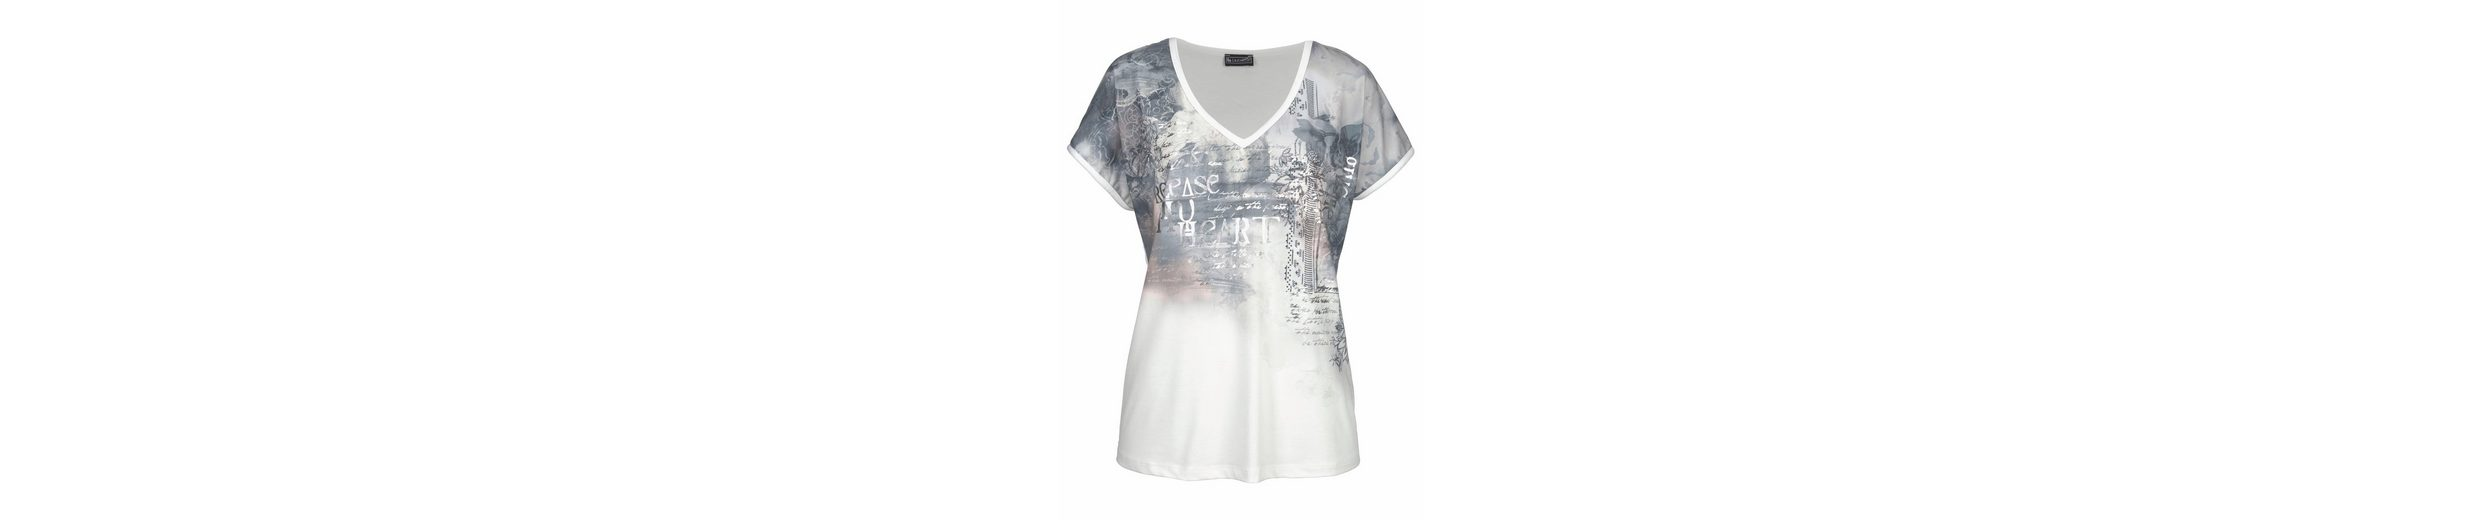 Laura Scott V-Shirt, mit modischem Print